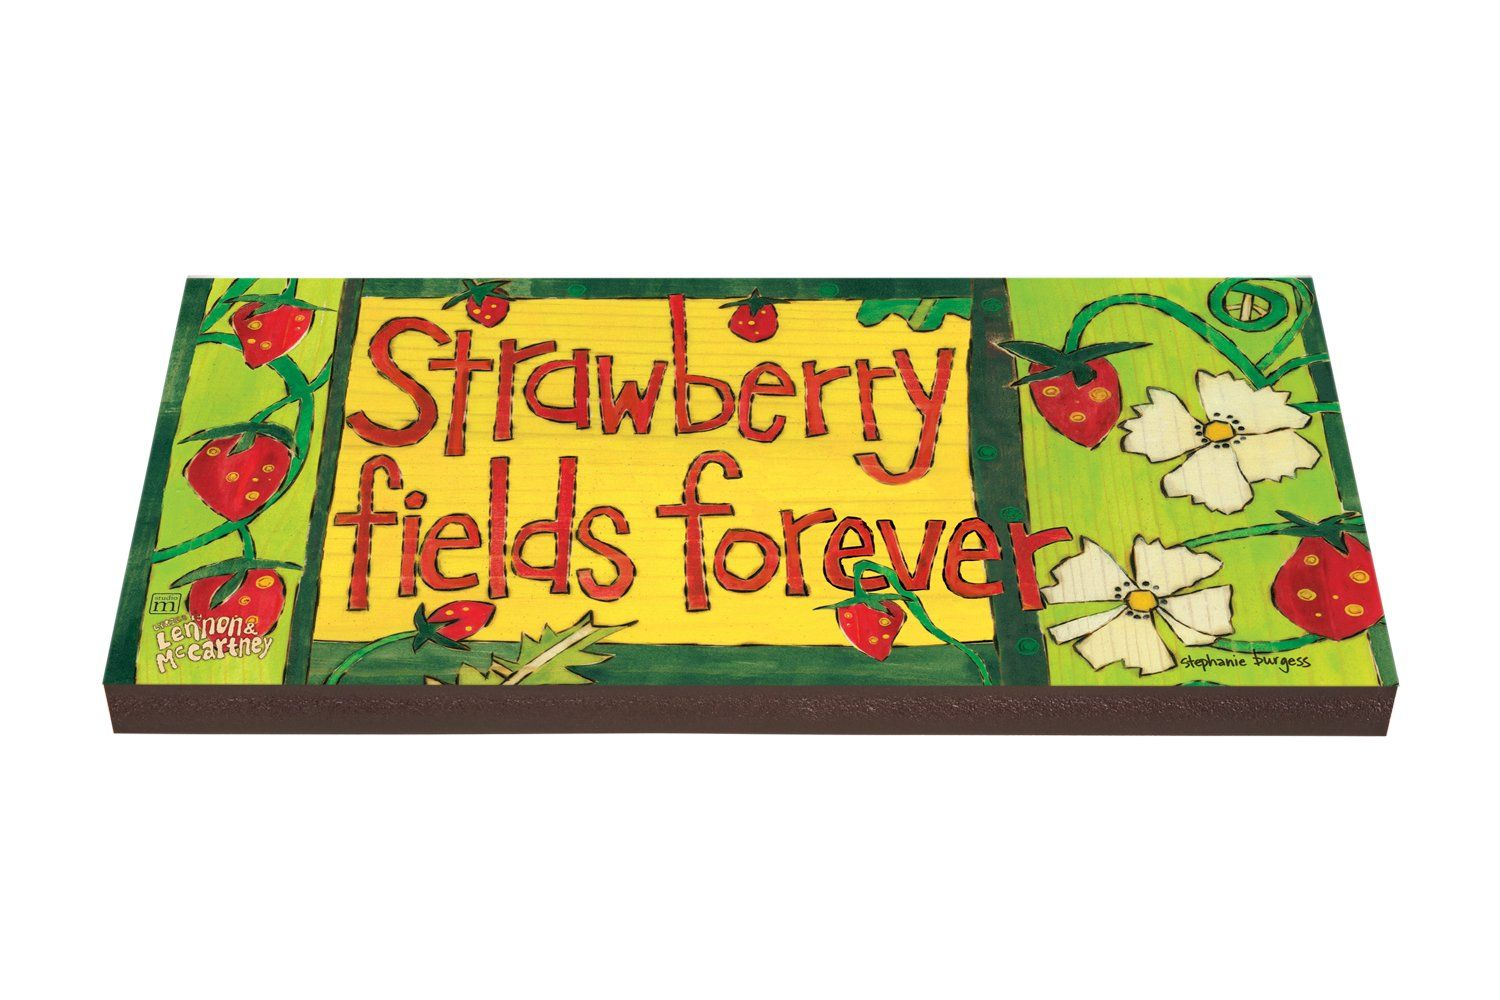 Strawberry fields forever outdoor wall art/plank new | Outdoor wall ...